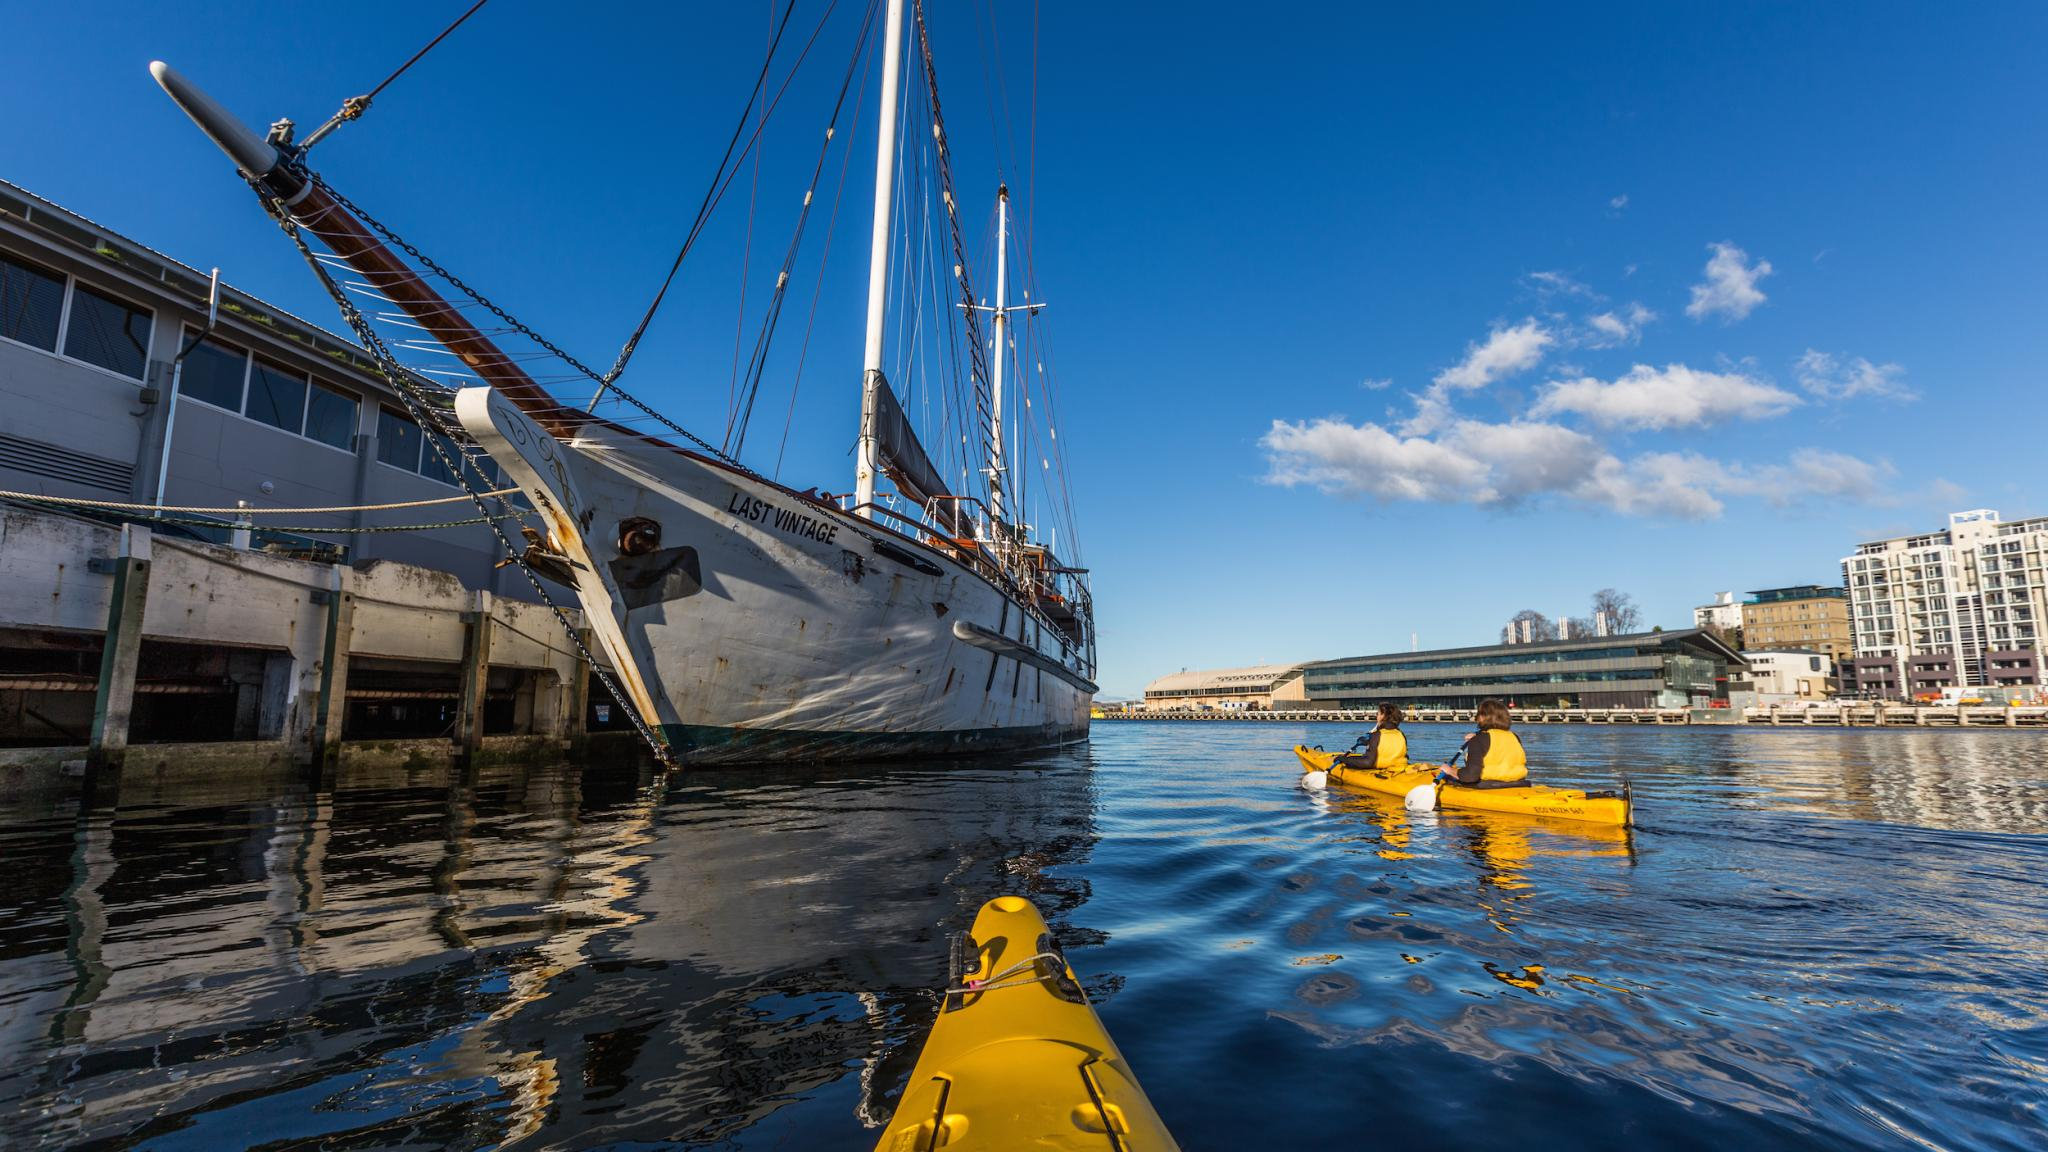 Roaring 40s Kayaking - Kayaking Hobart - One of the best things to do in Tasmania